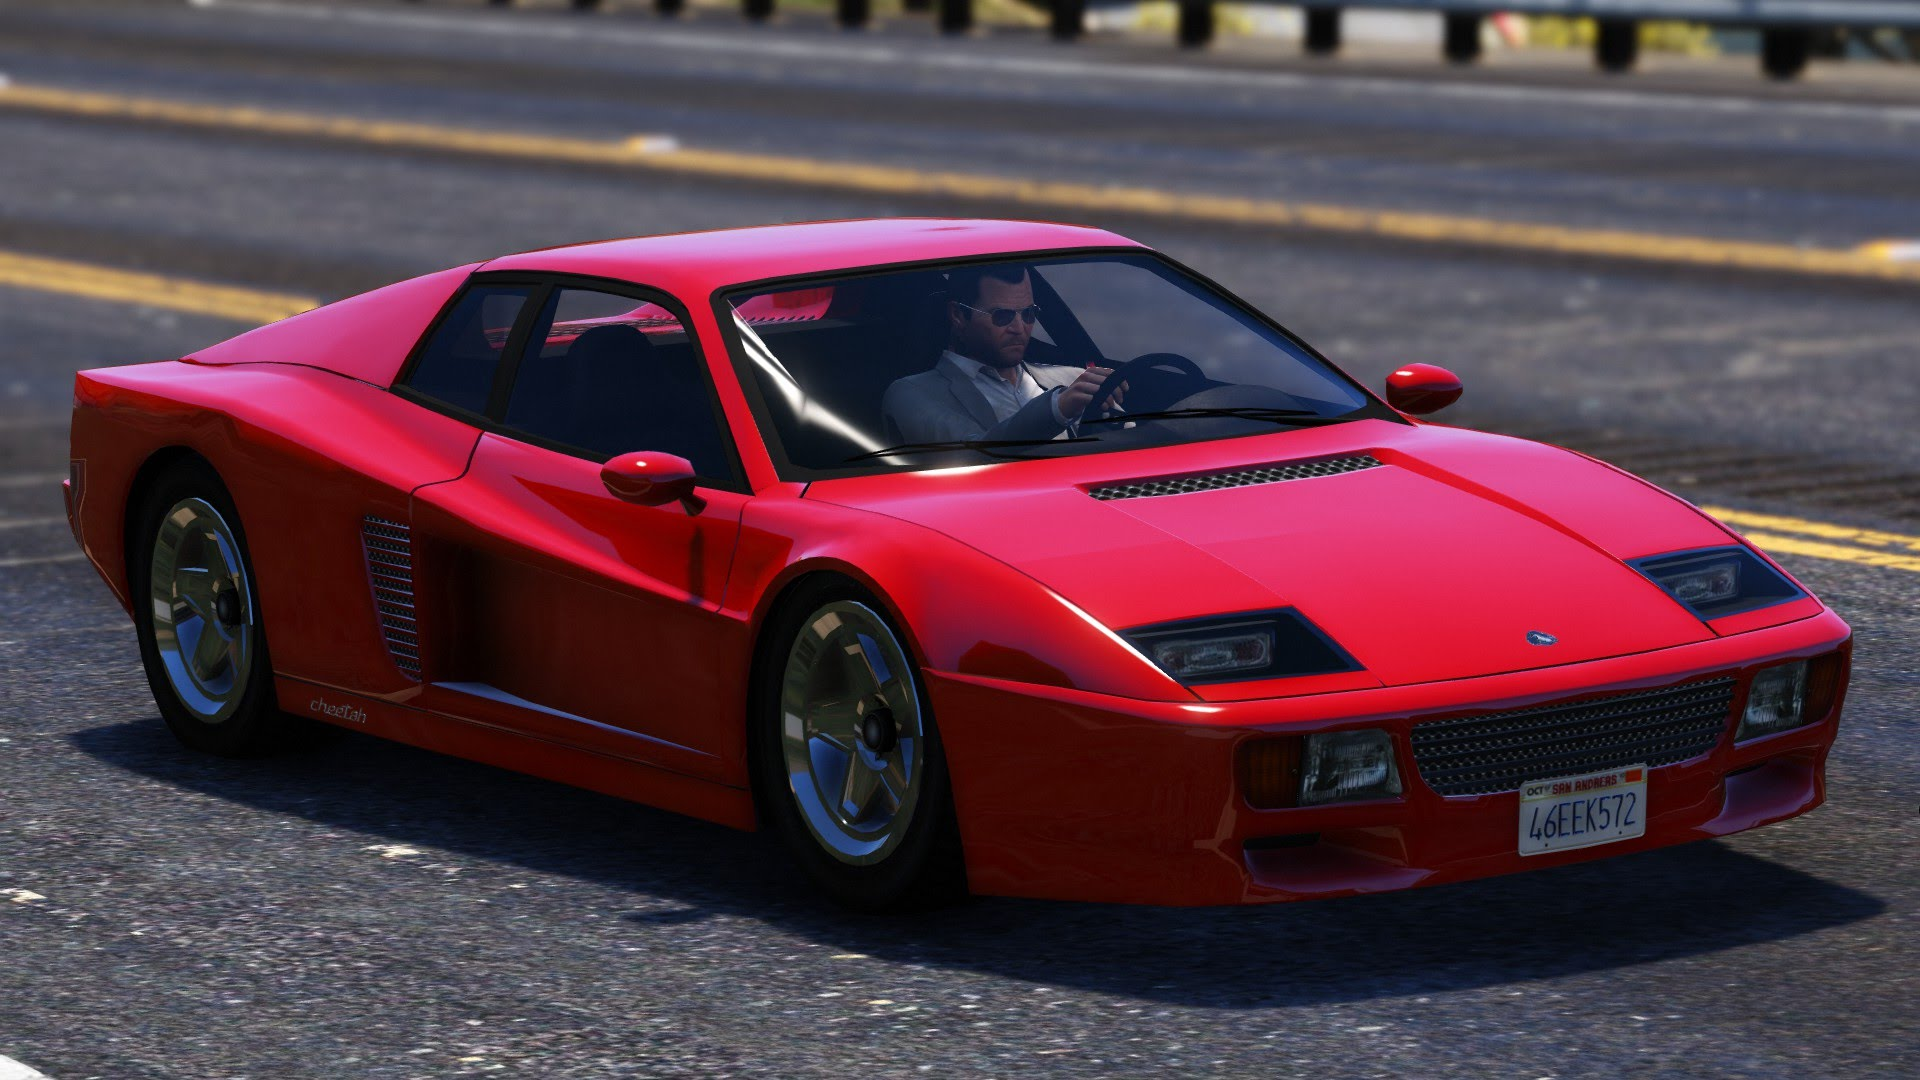 New GTA Online Update: New Car, Discounts, and More